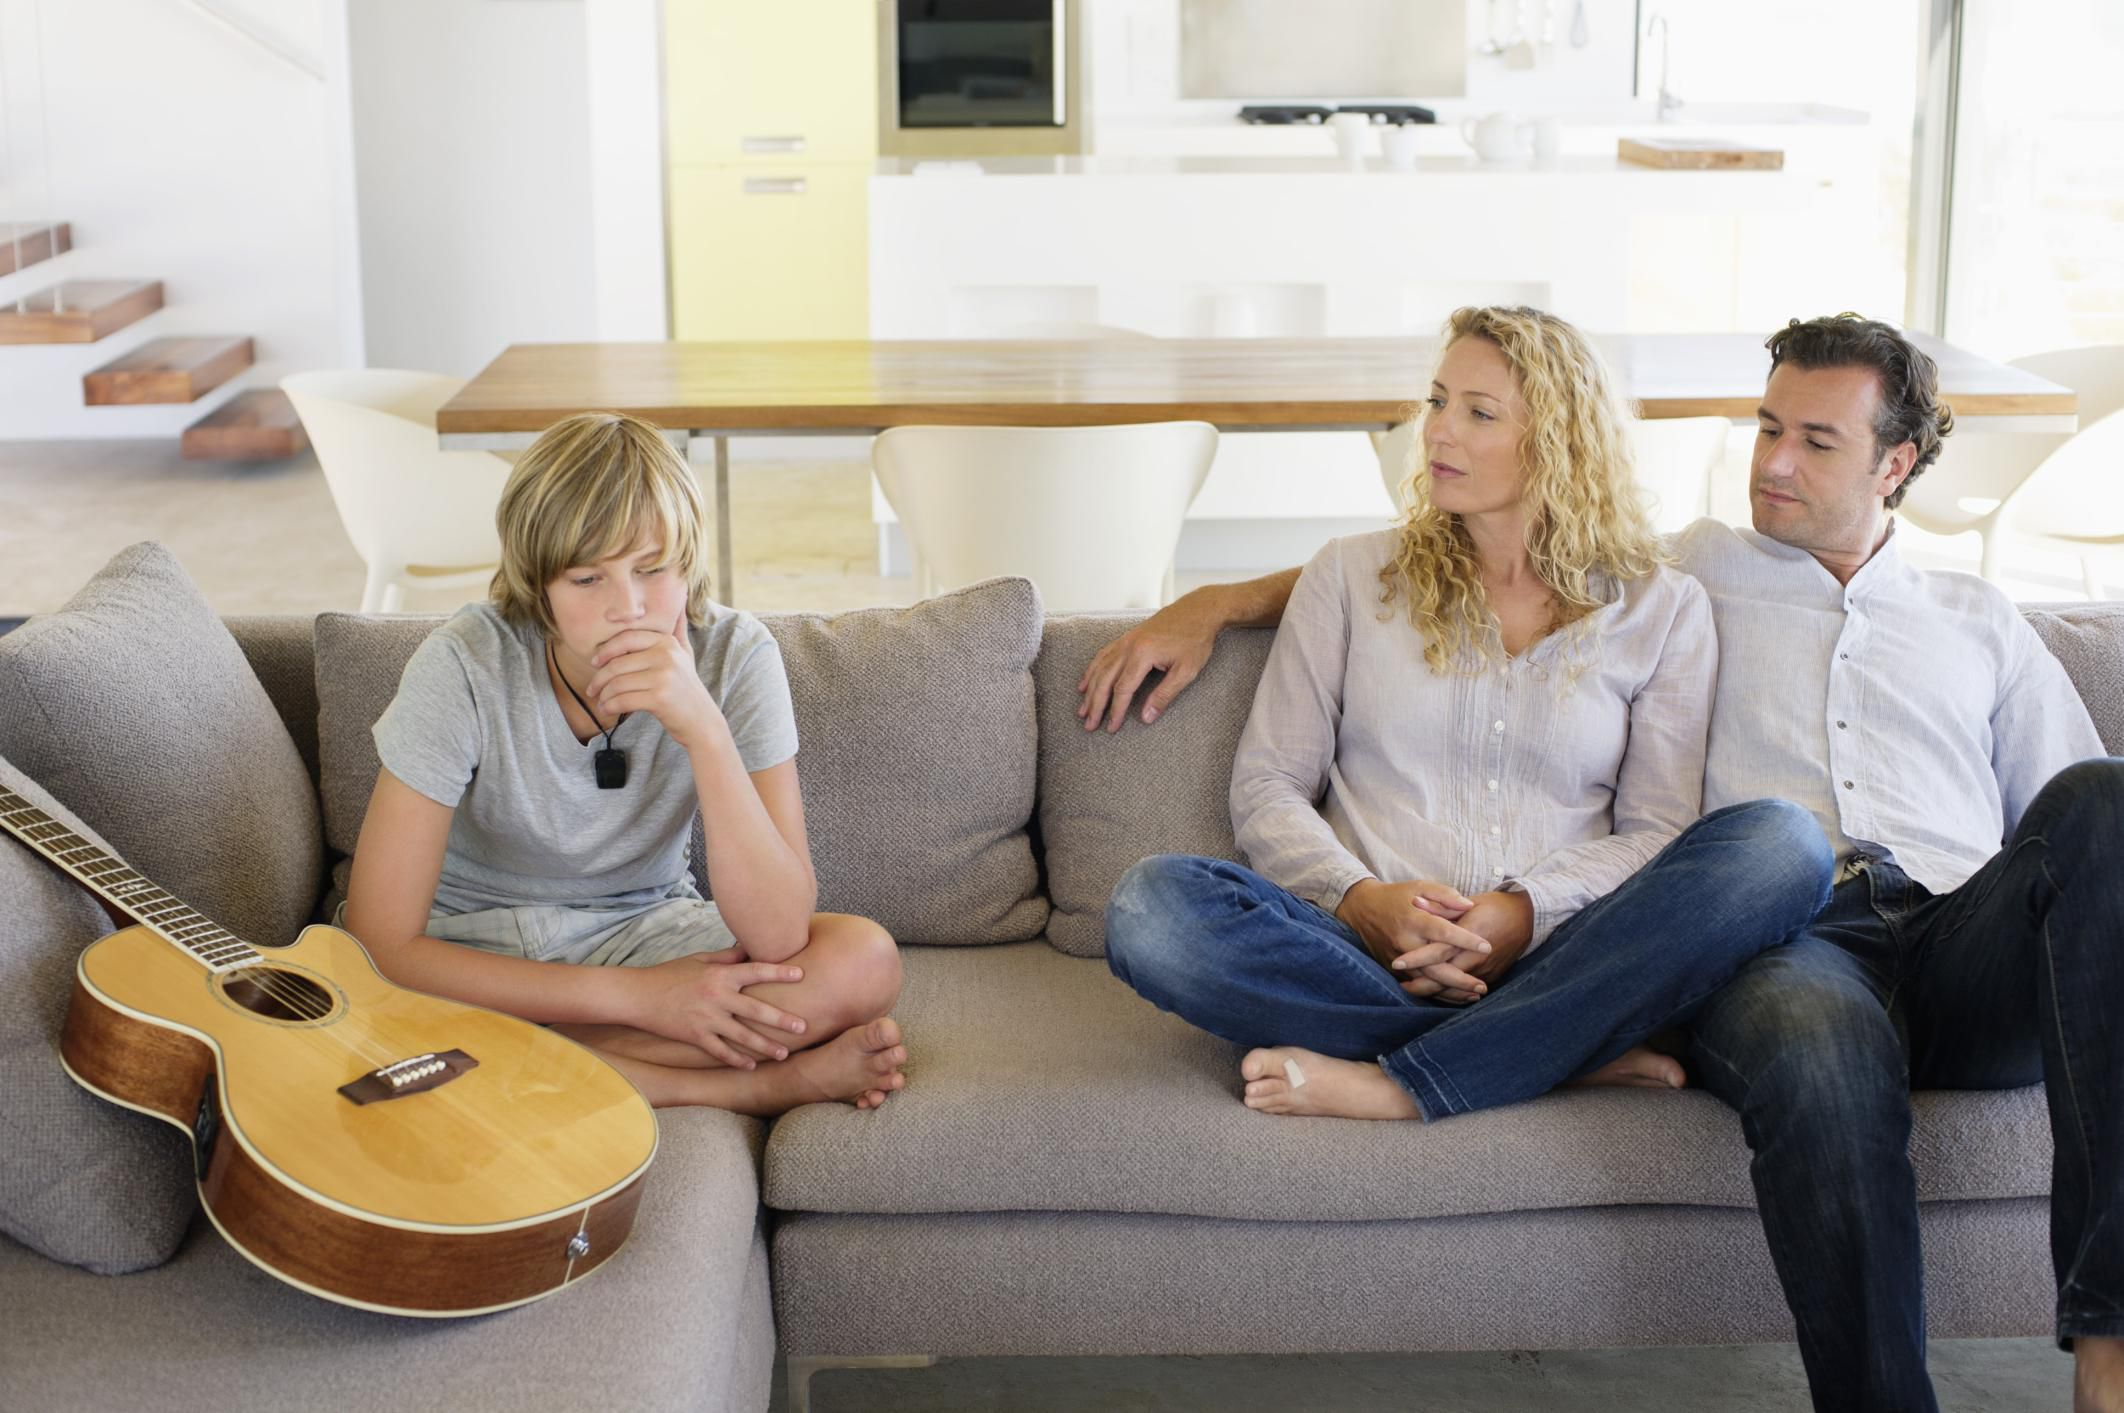 Types Of Depression Commonly Found In Teens